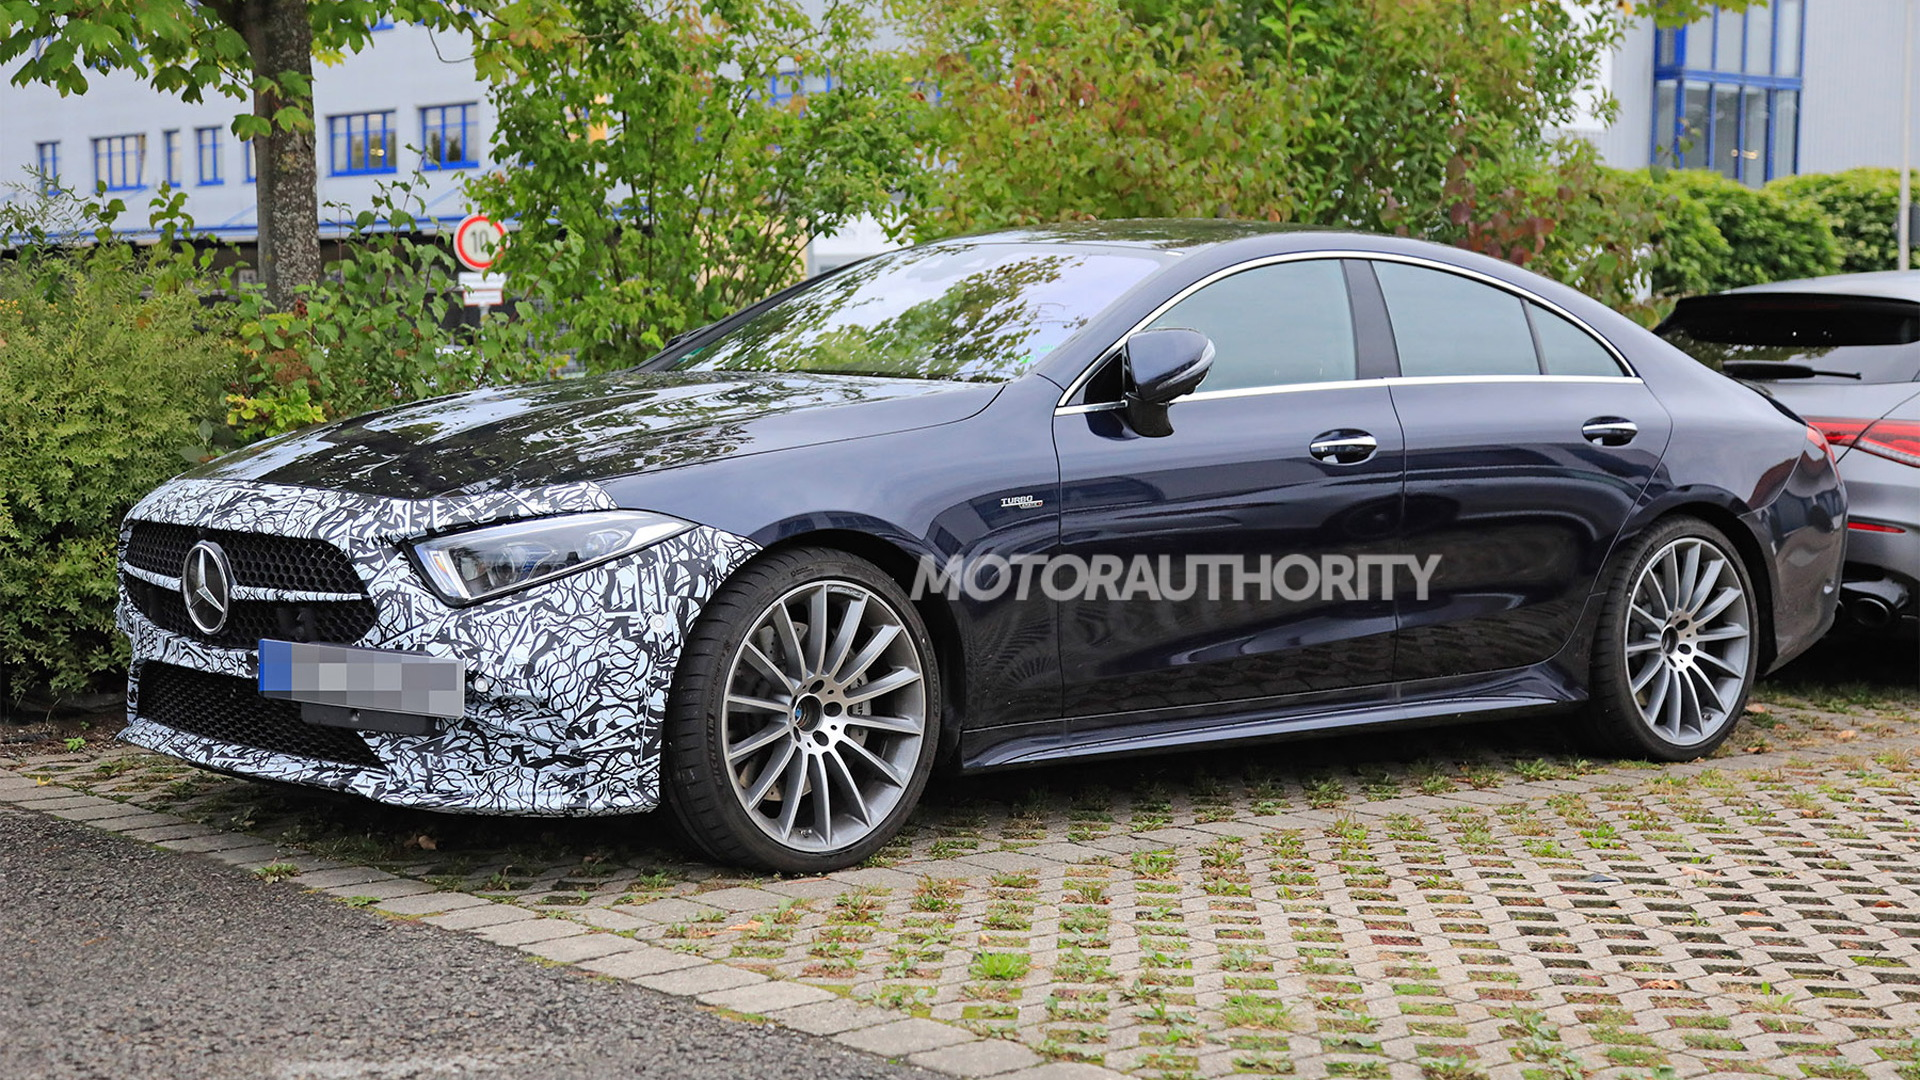 2022 Mercedes-AMG CLS53 facelift spy shots - Photo credit: S. Baldauf/SB-Medien